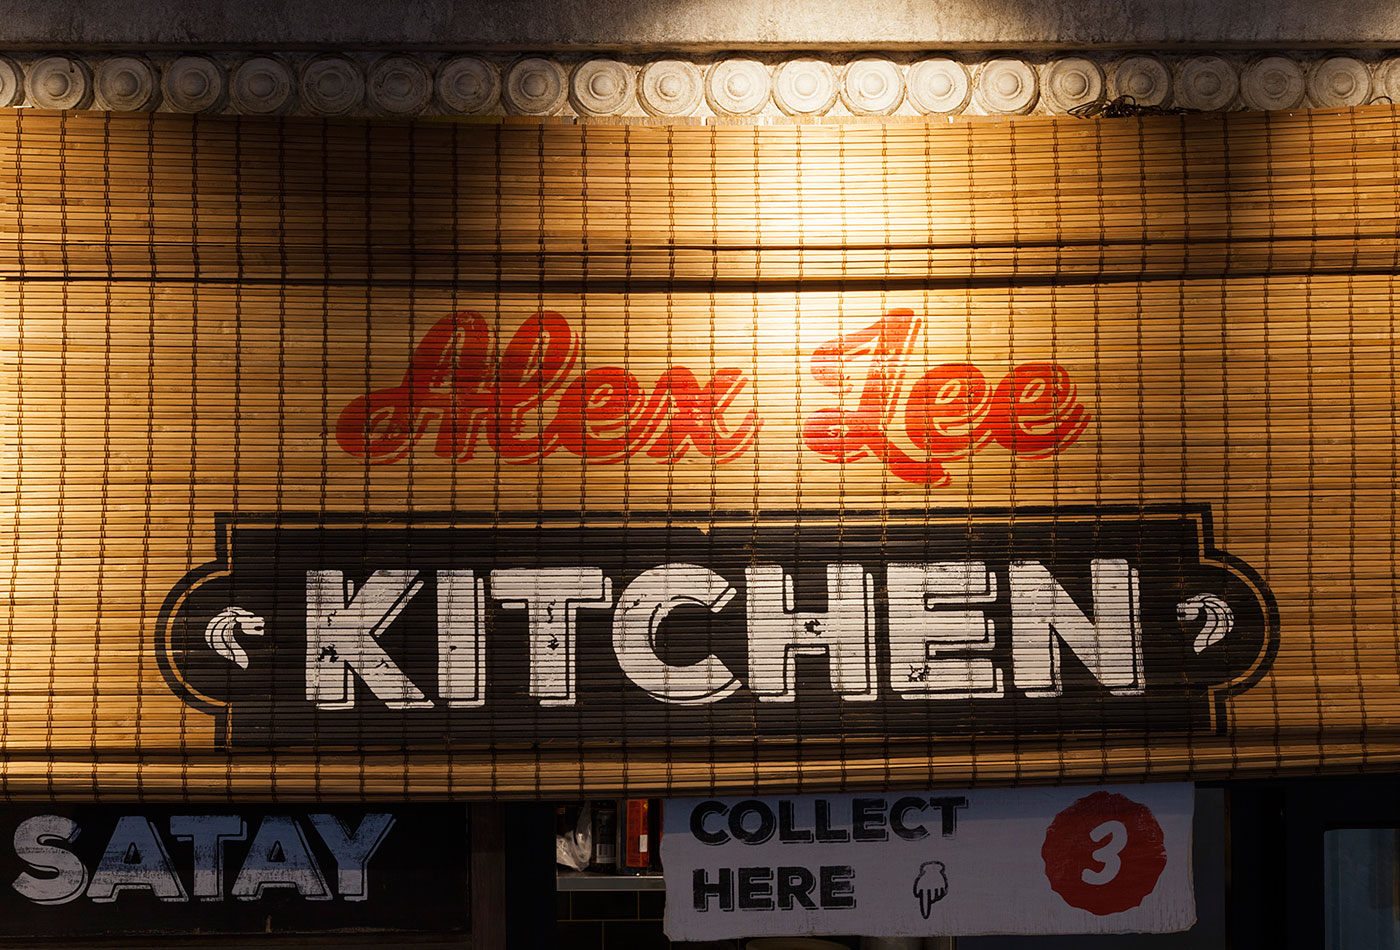 Alex Lee Kitchen, Spice Alley